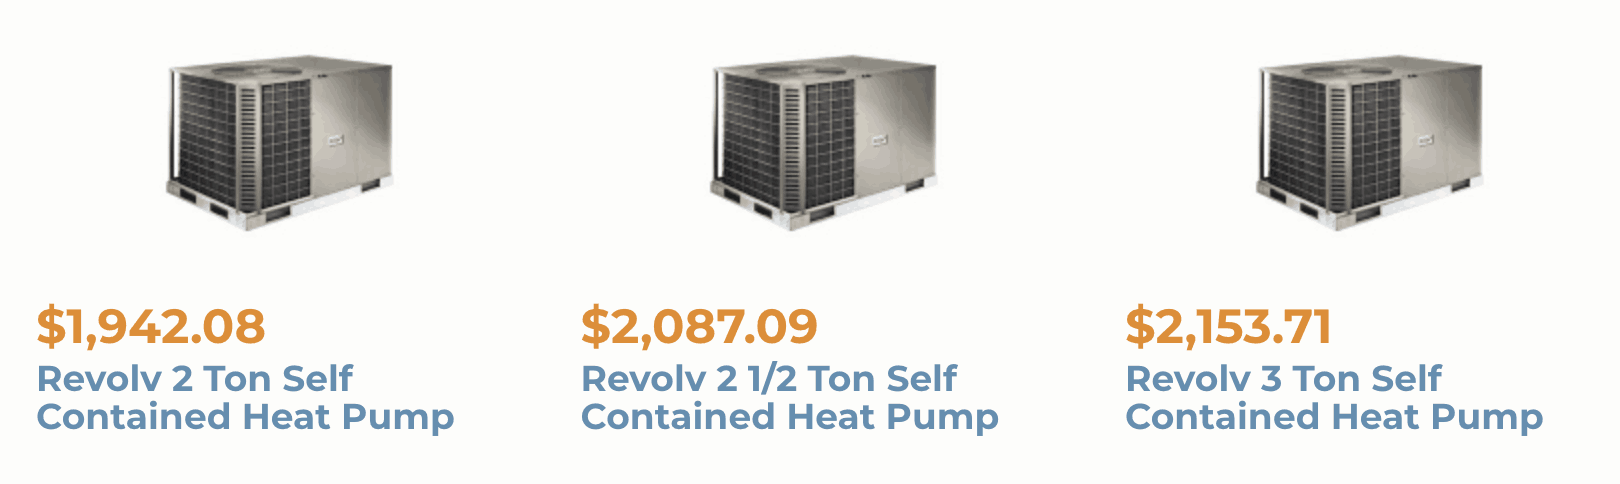 heat pumps for mobile homes - priced